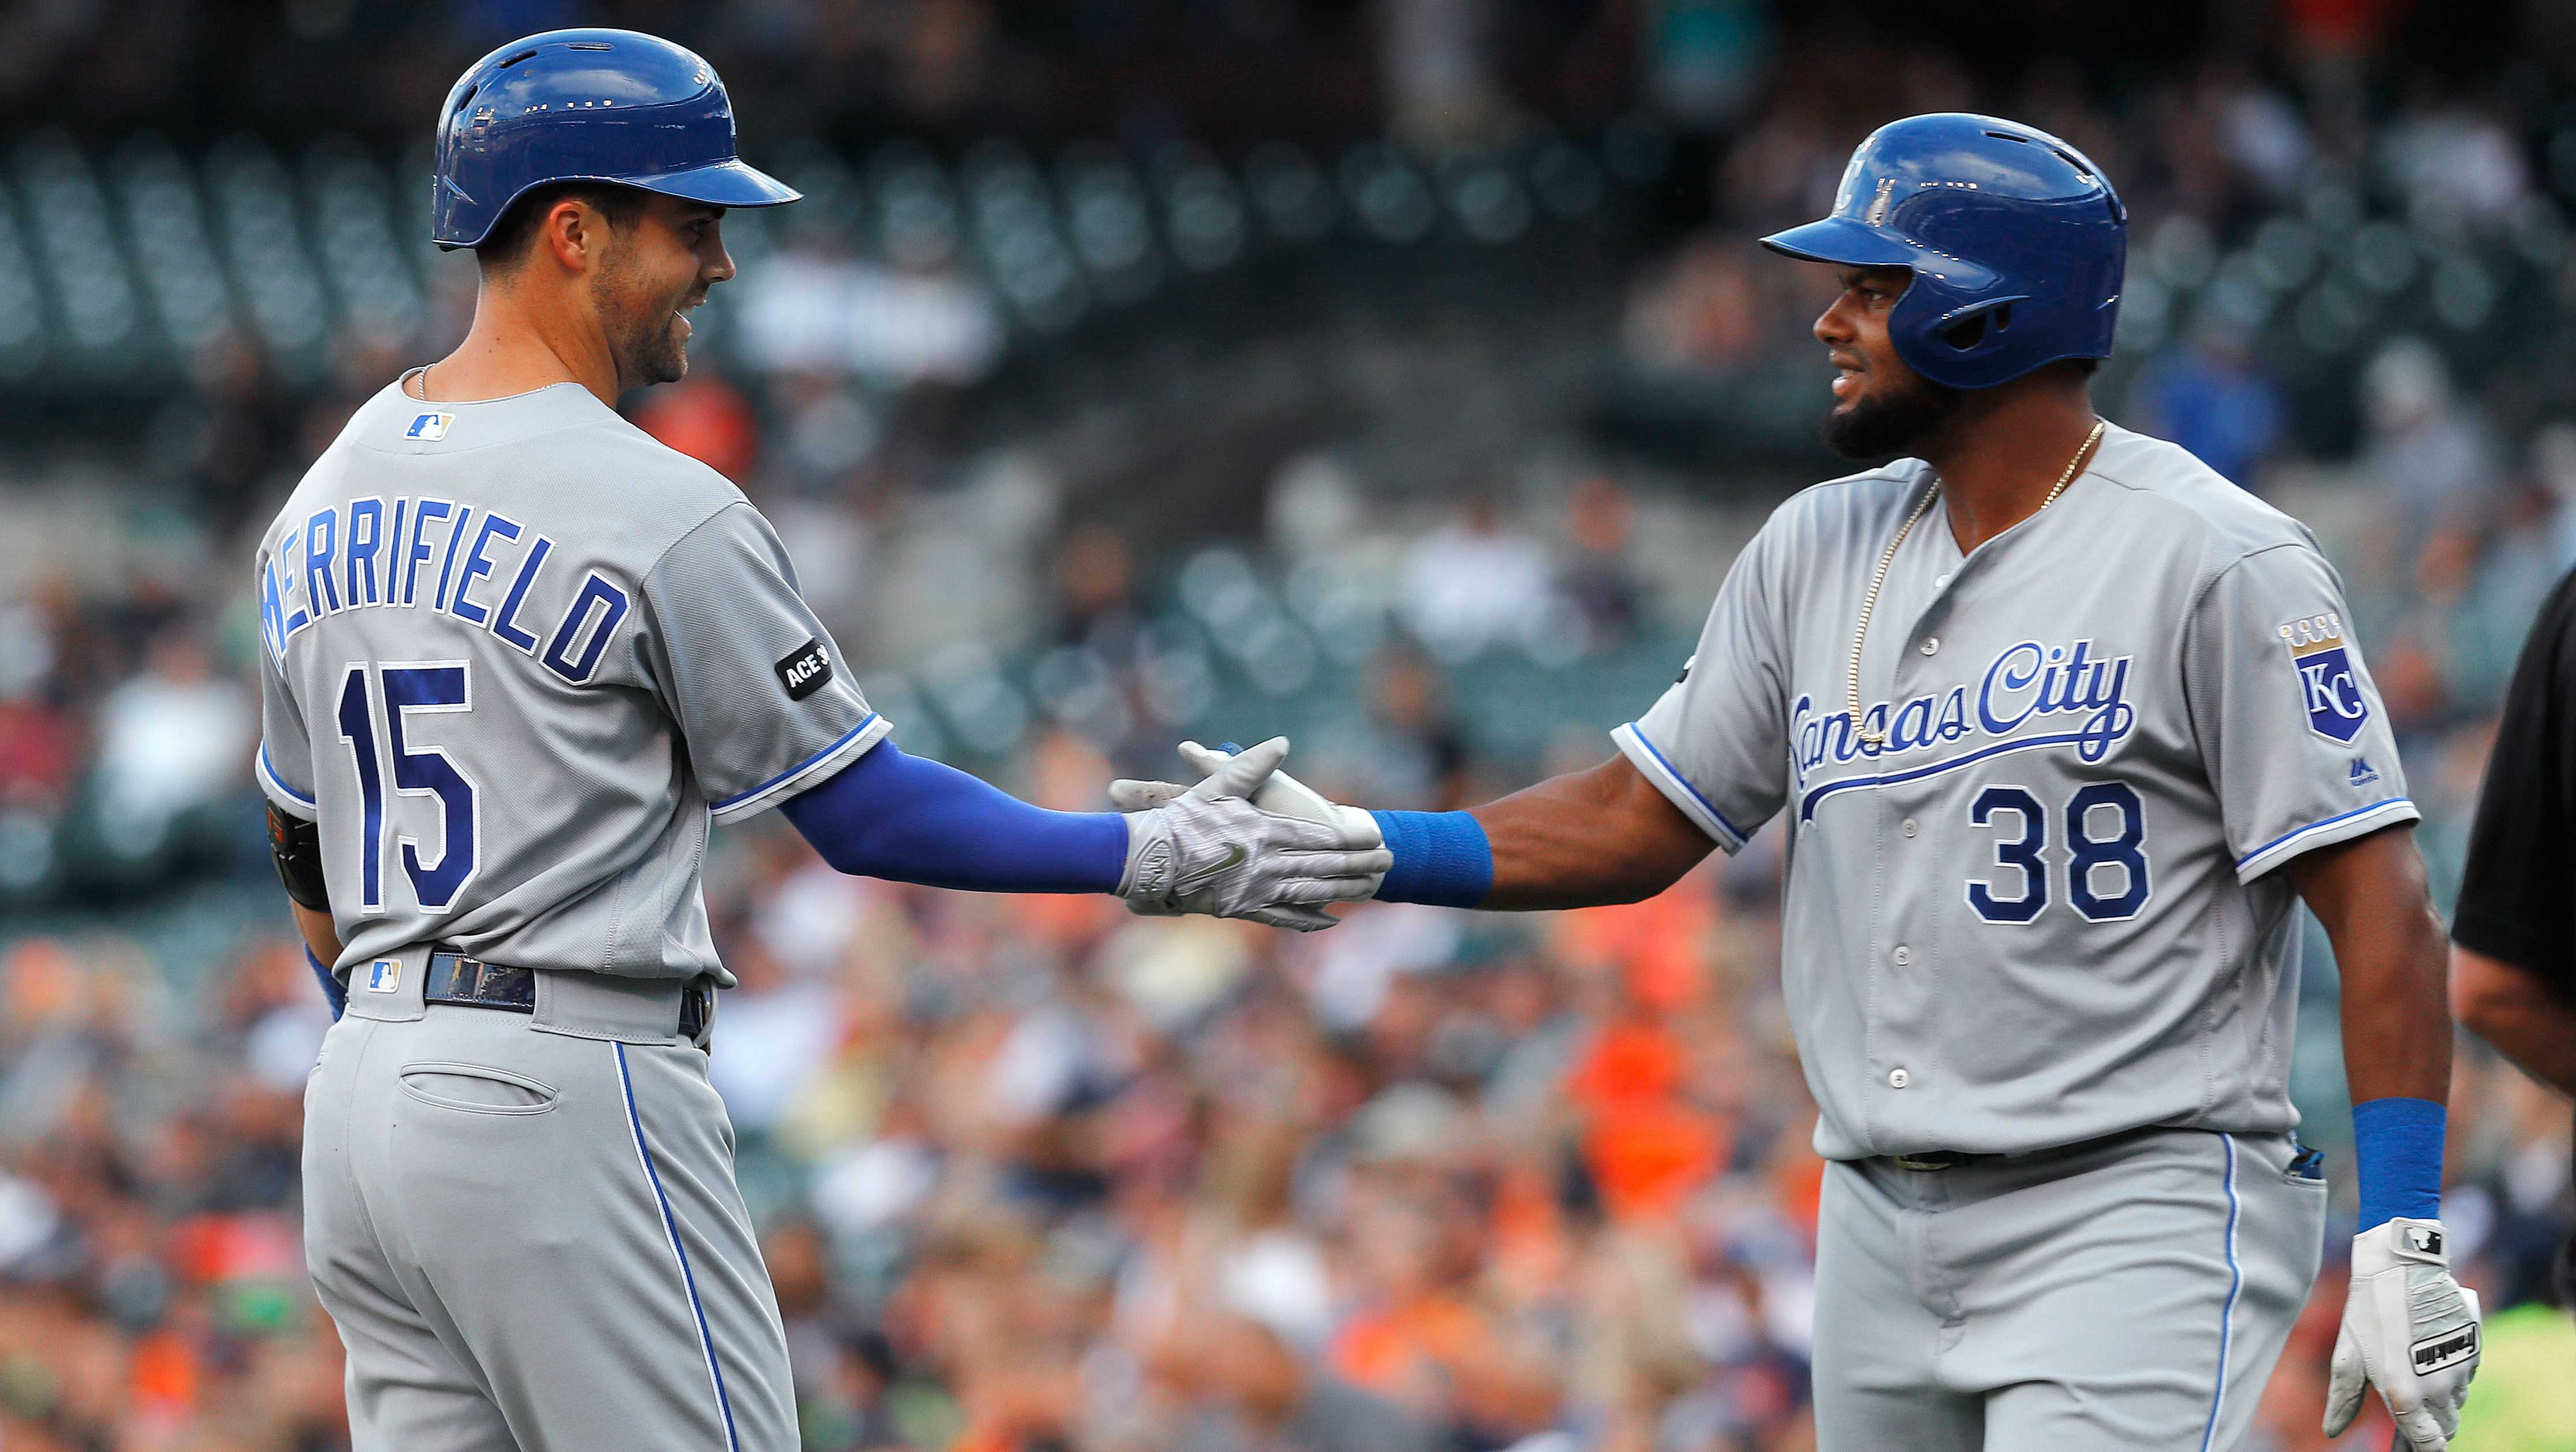 Kansas City Royals' Whit Merrifield (15) celebrates his lead off solo home run with Jorge Bonifacio (38) against the Detroit Tigers in the first inning of a baseball game in Detroit, Tuesday, July 25, 2017. (AP Photo/Paul Sancya)